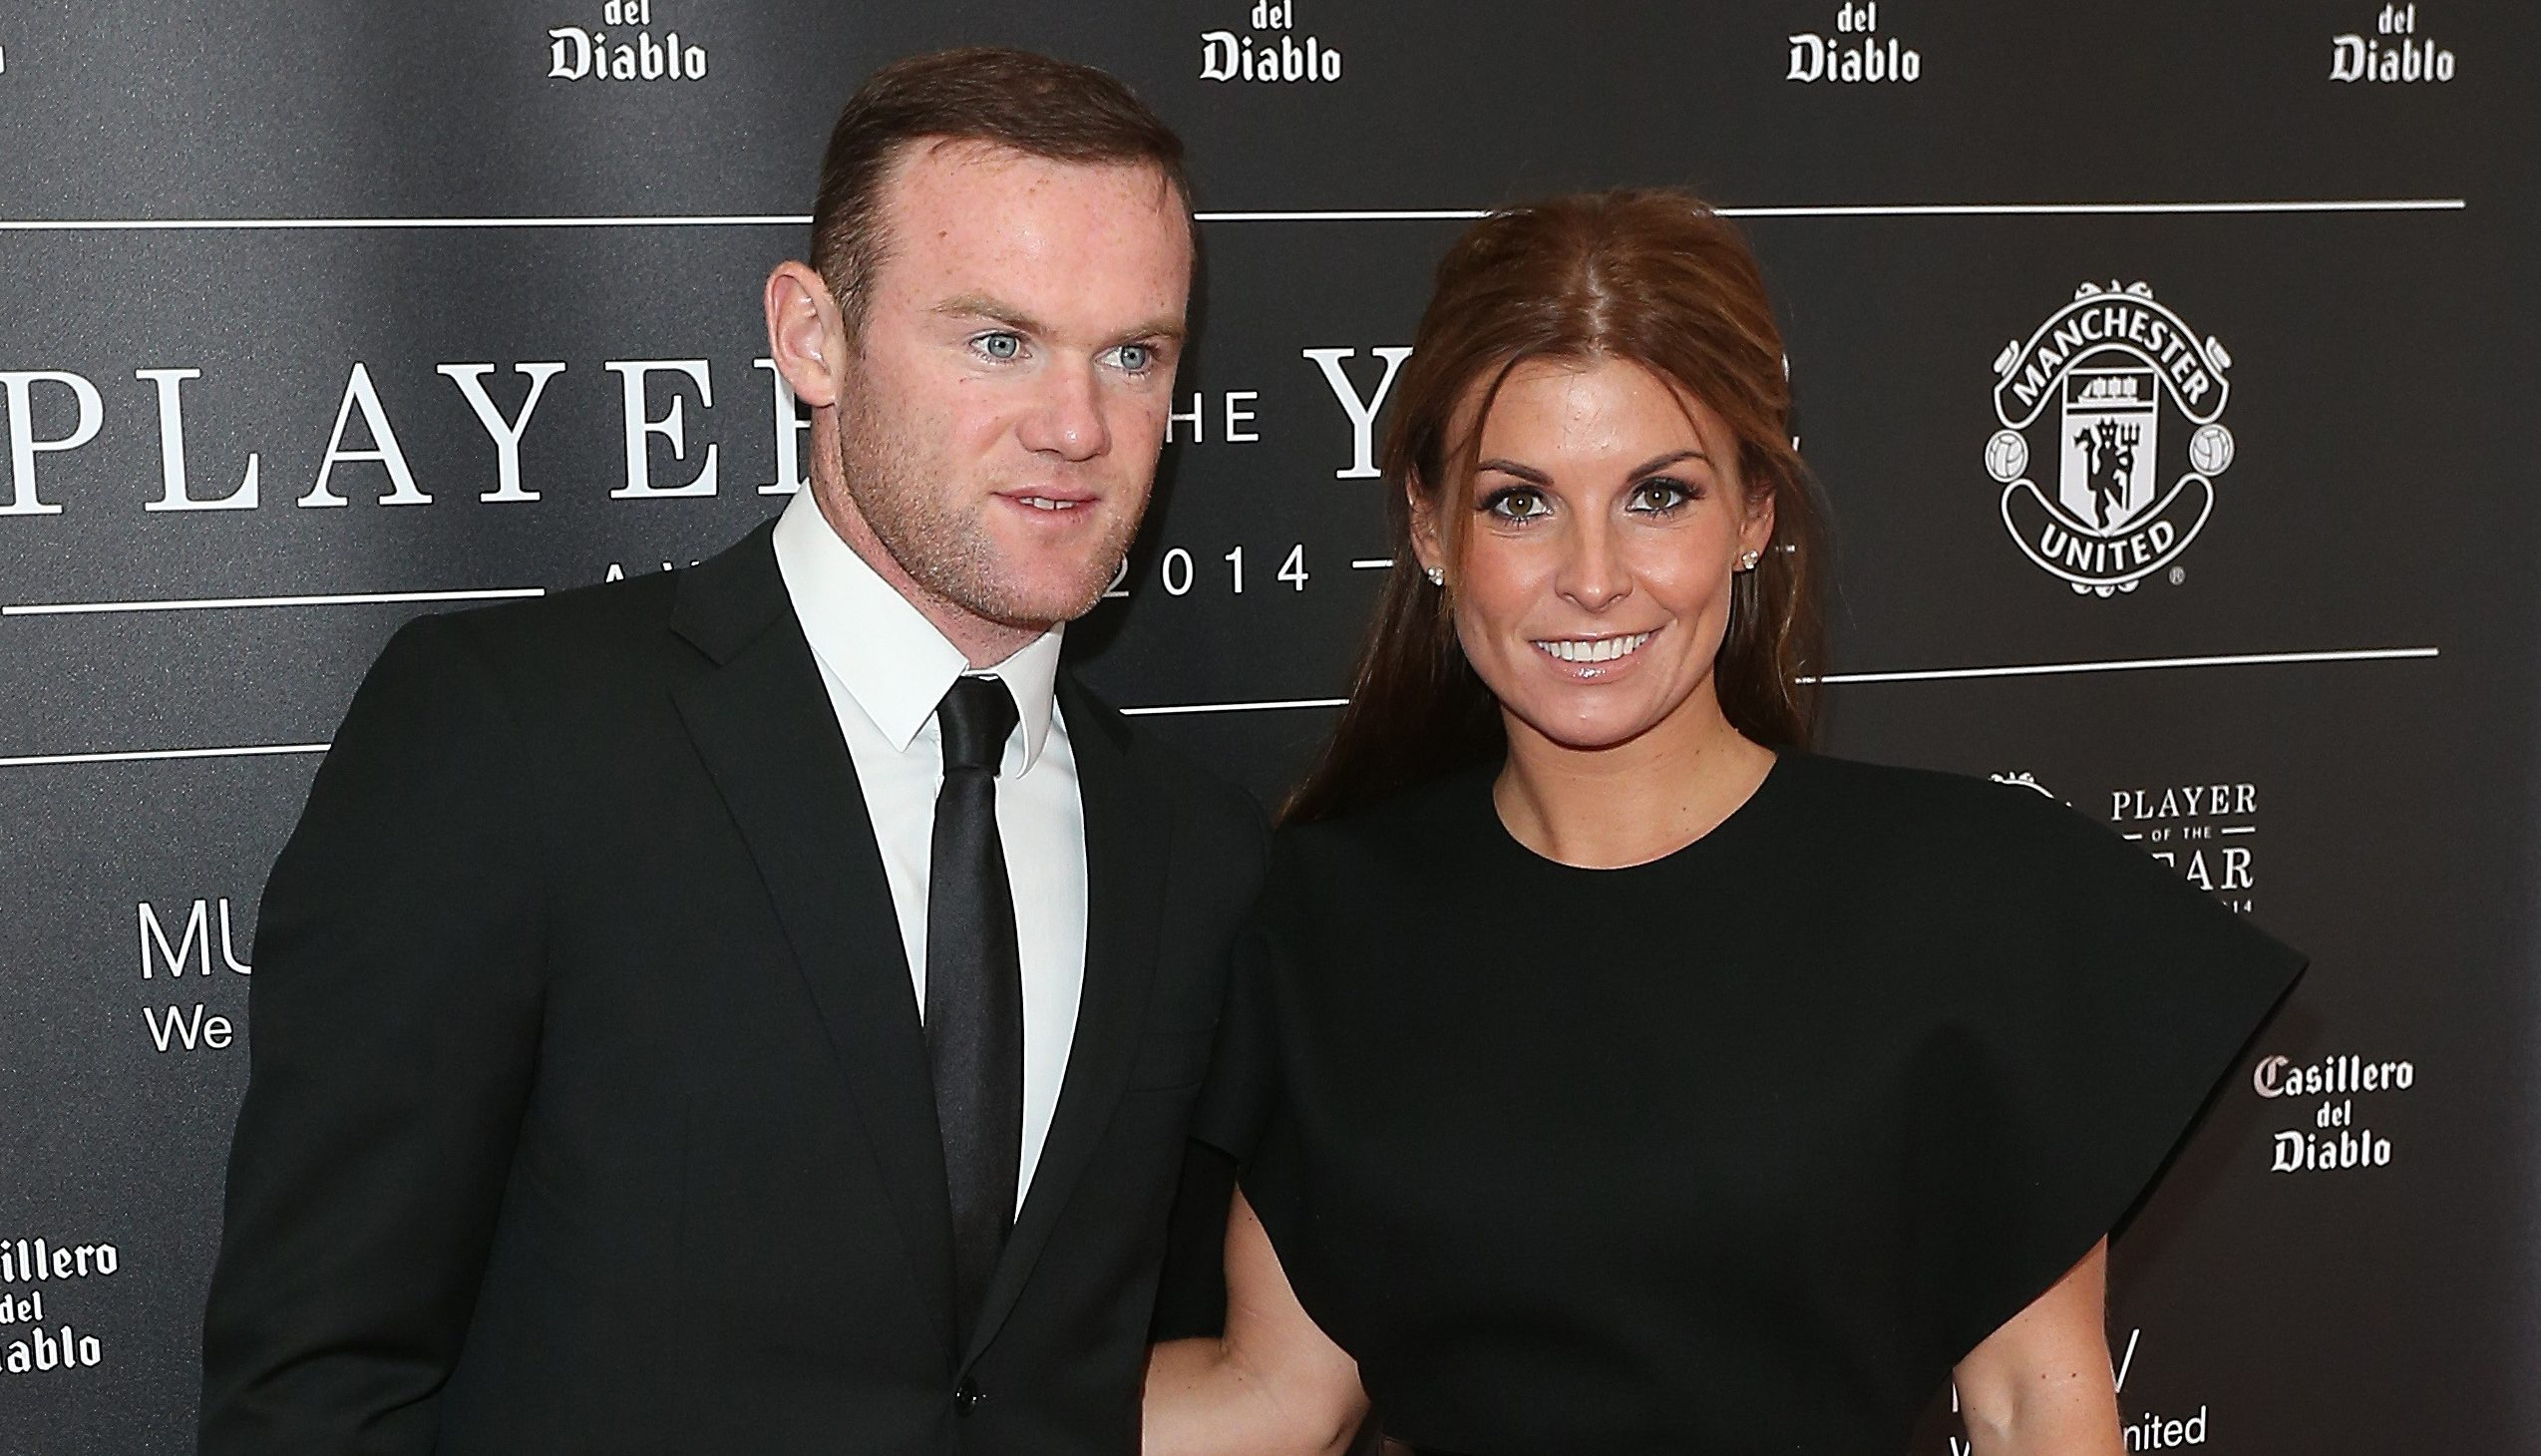 Wayne Rooney shares sweet family shot to Instagram, ahead of possible move to the States